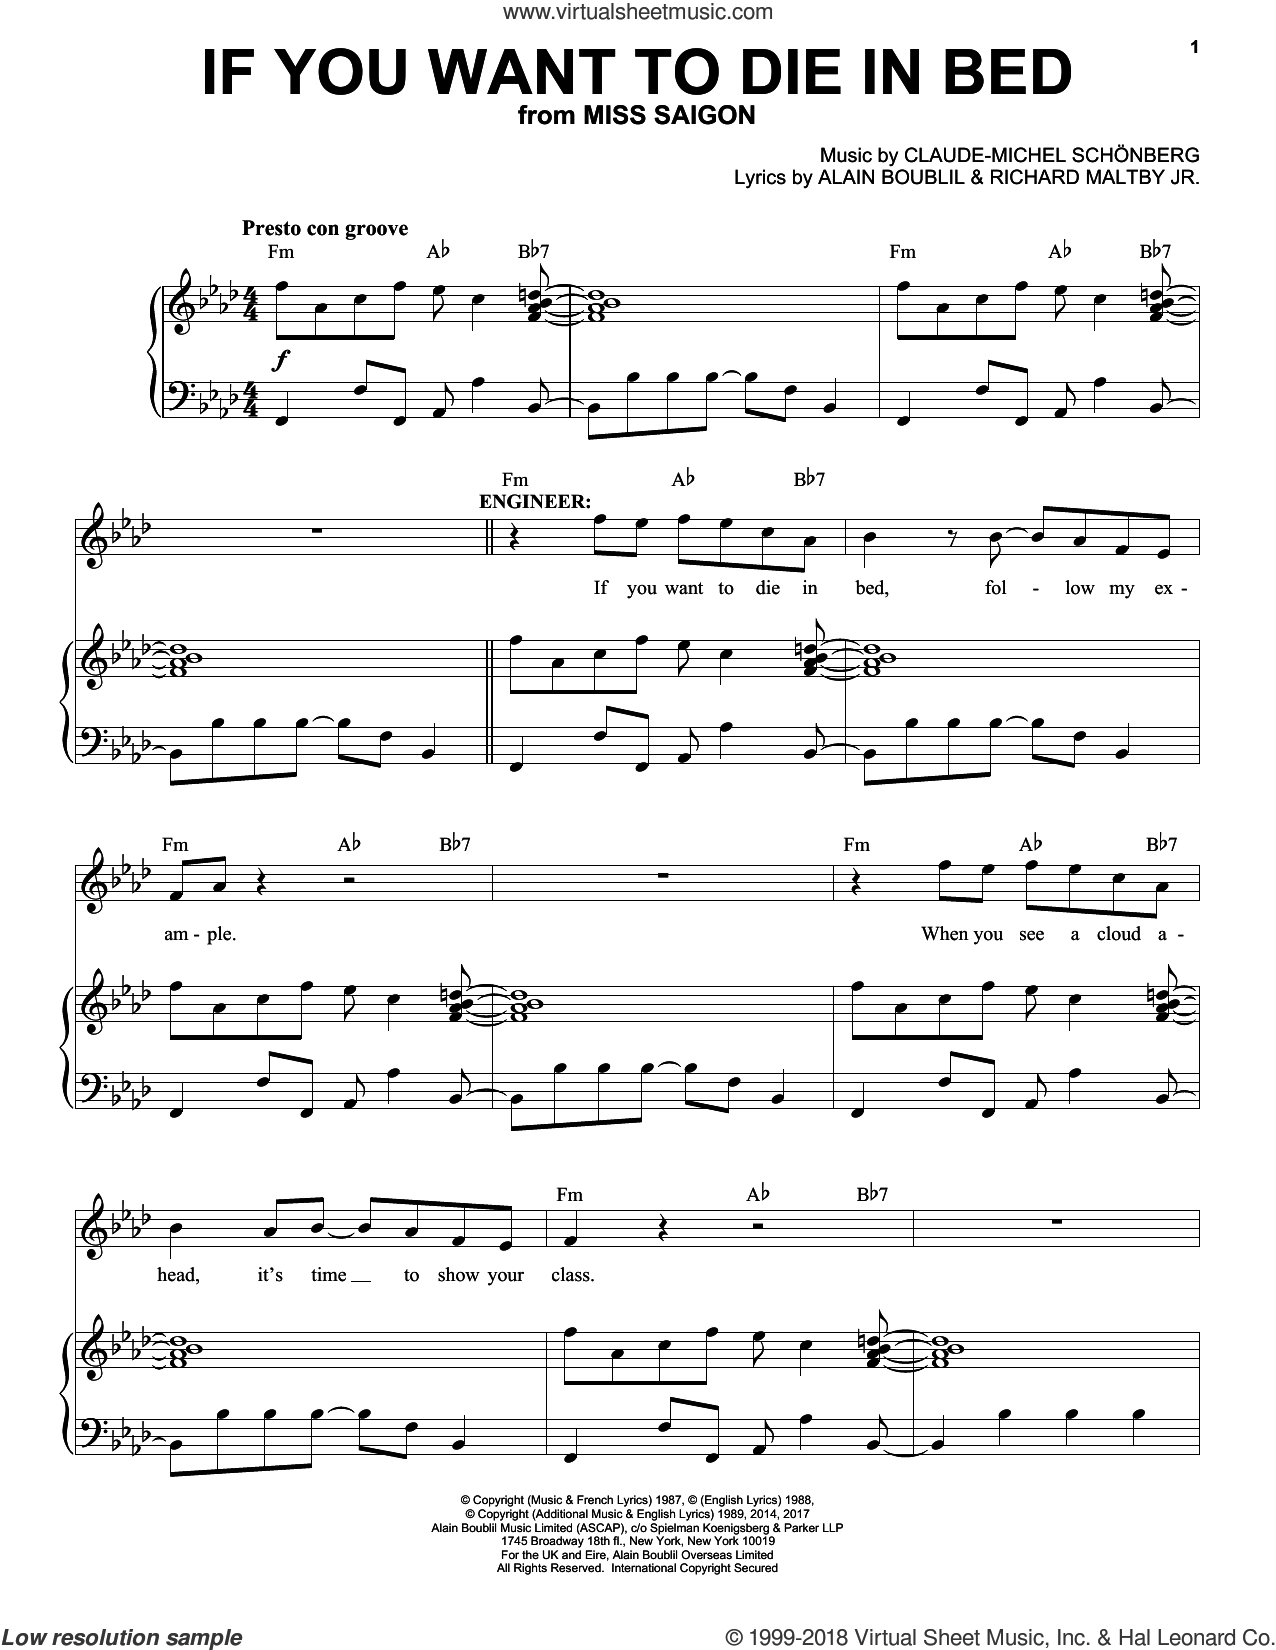 If You Want To Die In Bed sheet music for voice and piano by Claude-Michel Schonberg, Miss Saigon (Musical), Alain Boublil, Michel LeGrand and Richard Maltby, Jr., intermediate skill level